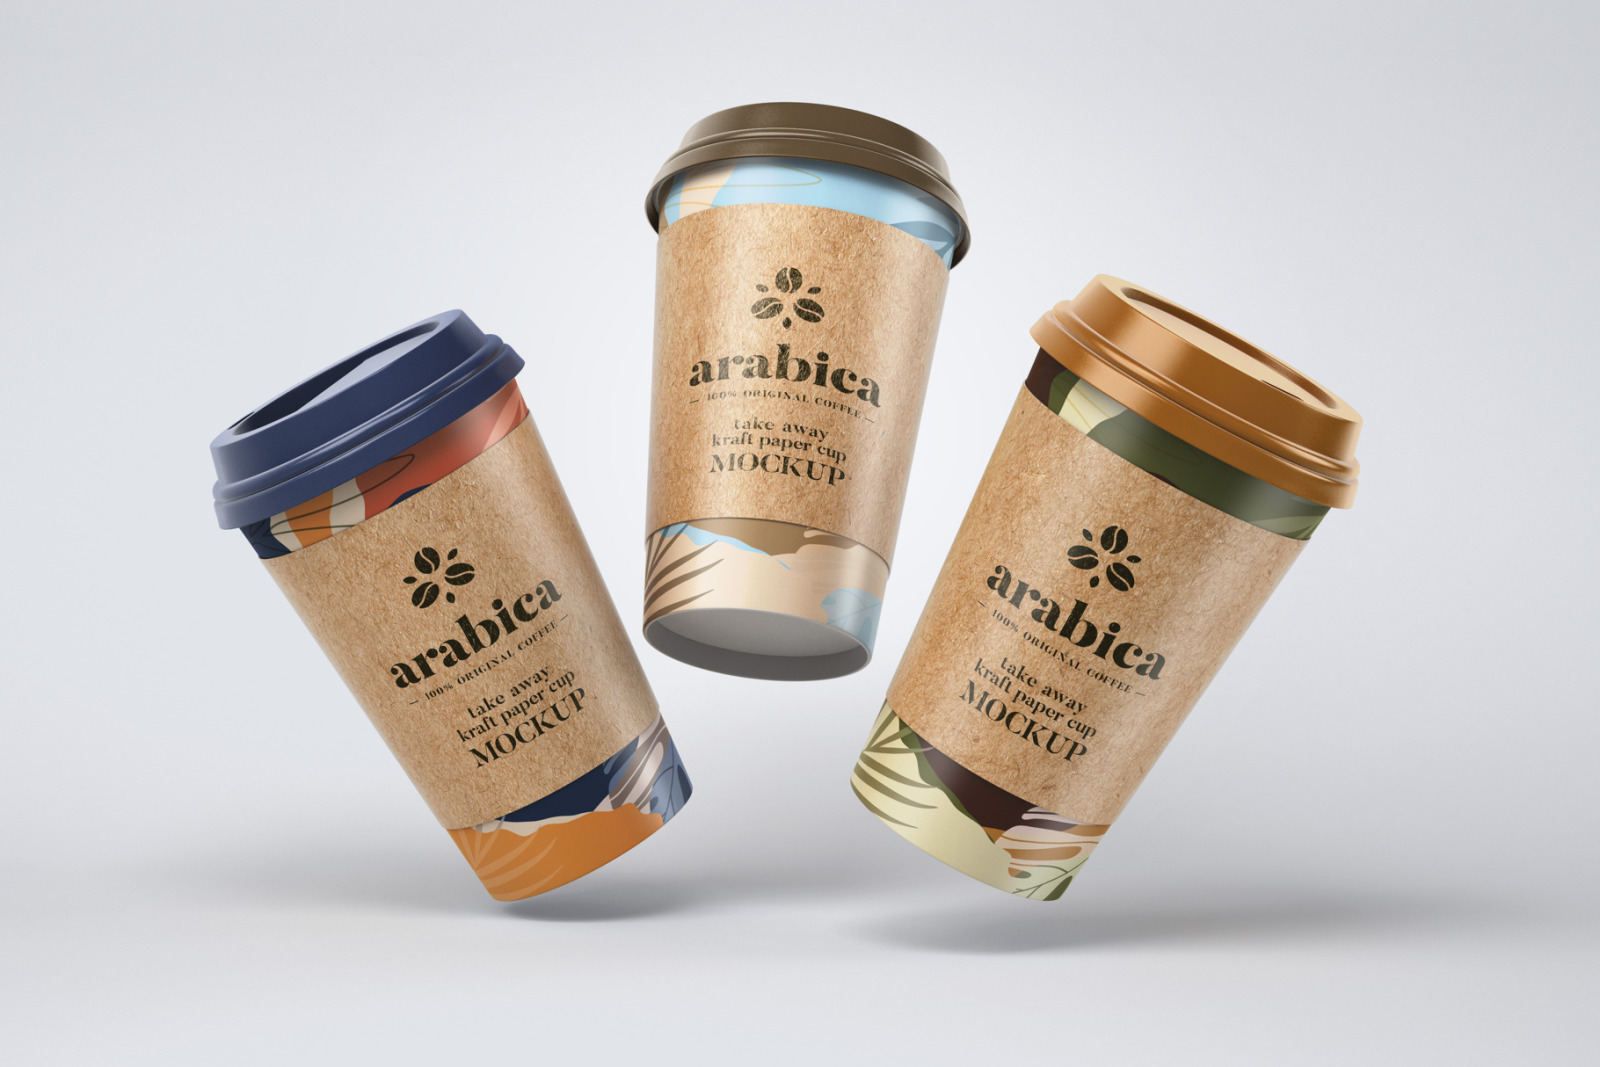 Take Away Paper Coffee Cup Mockup Set